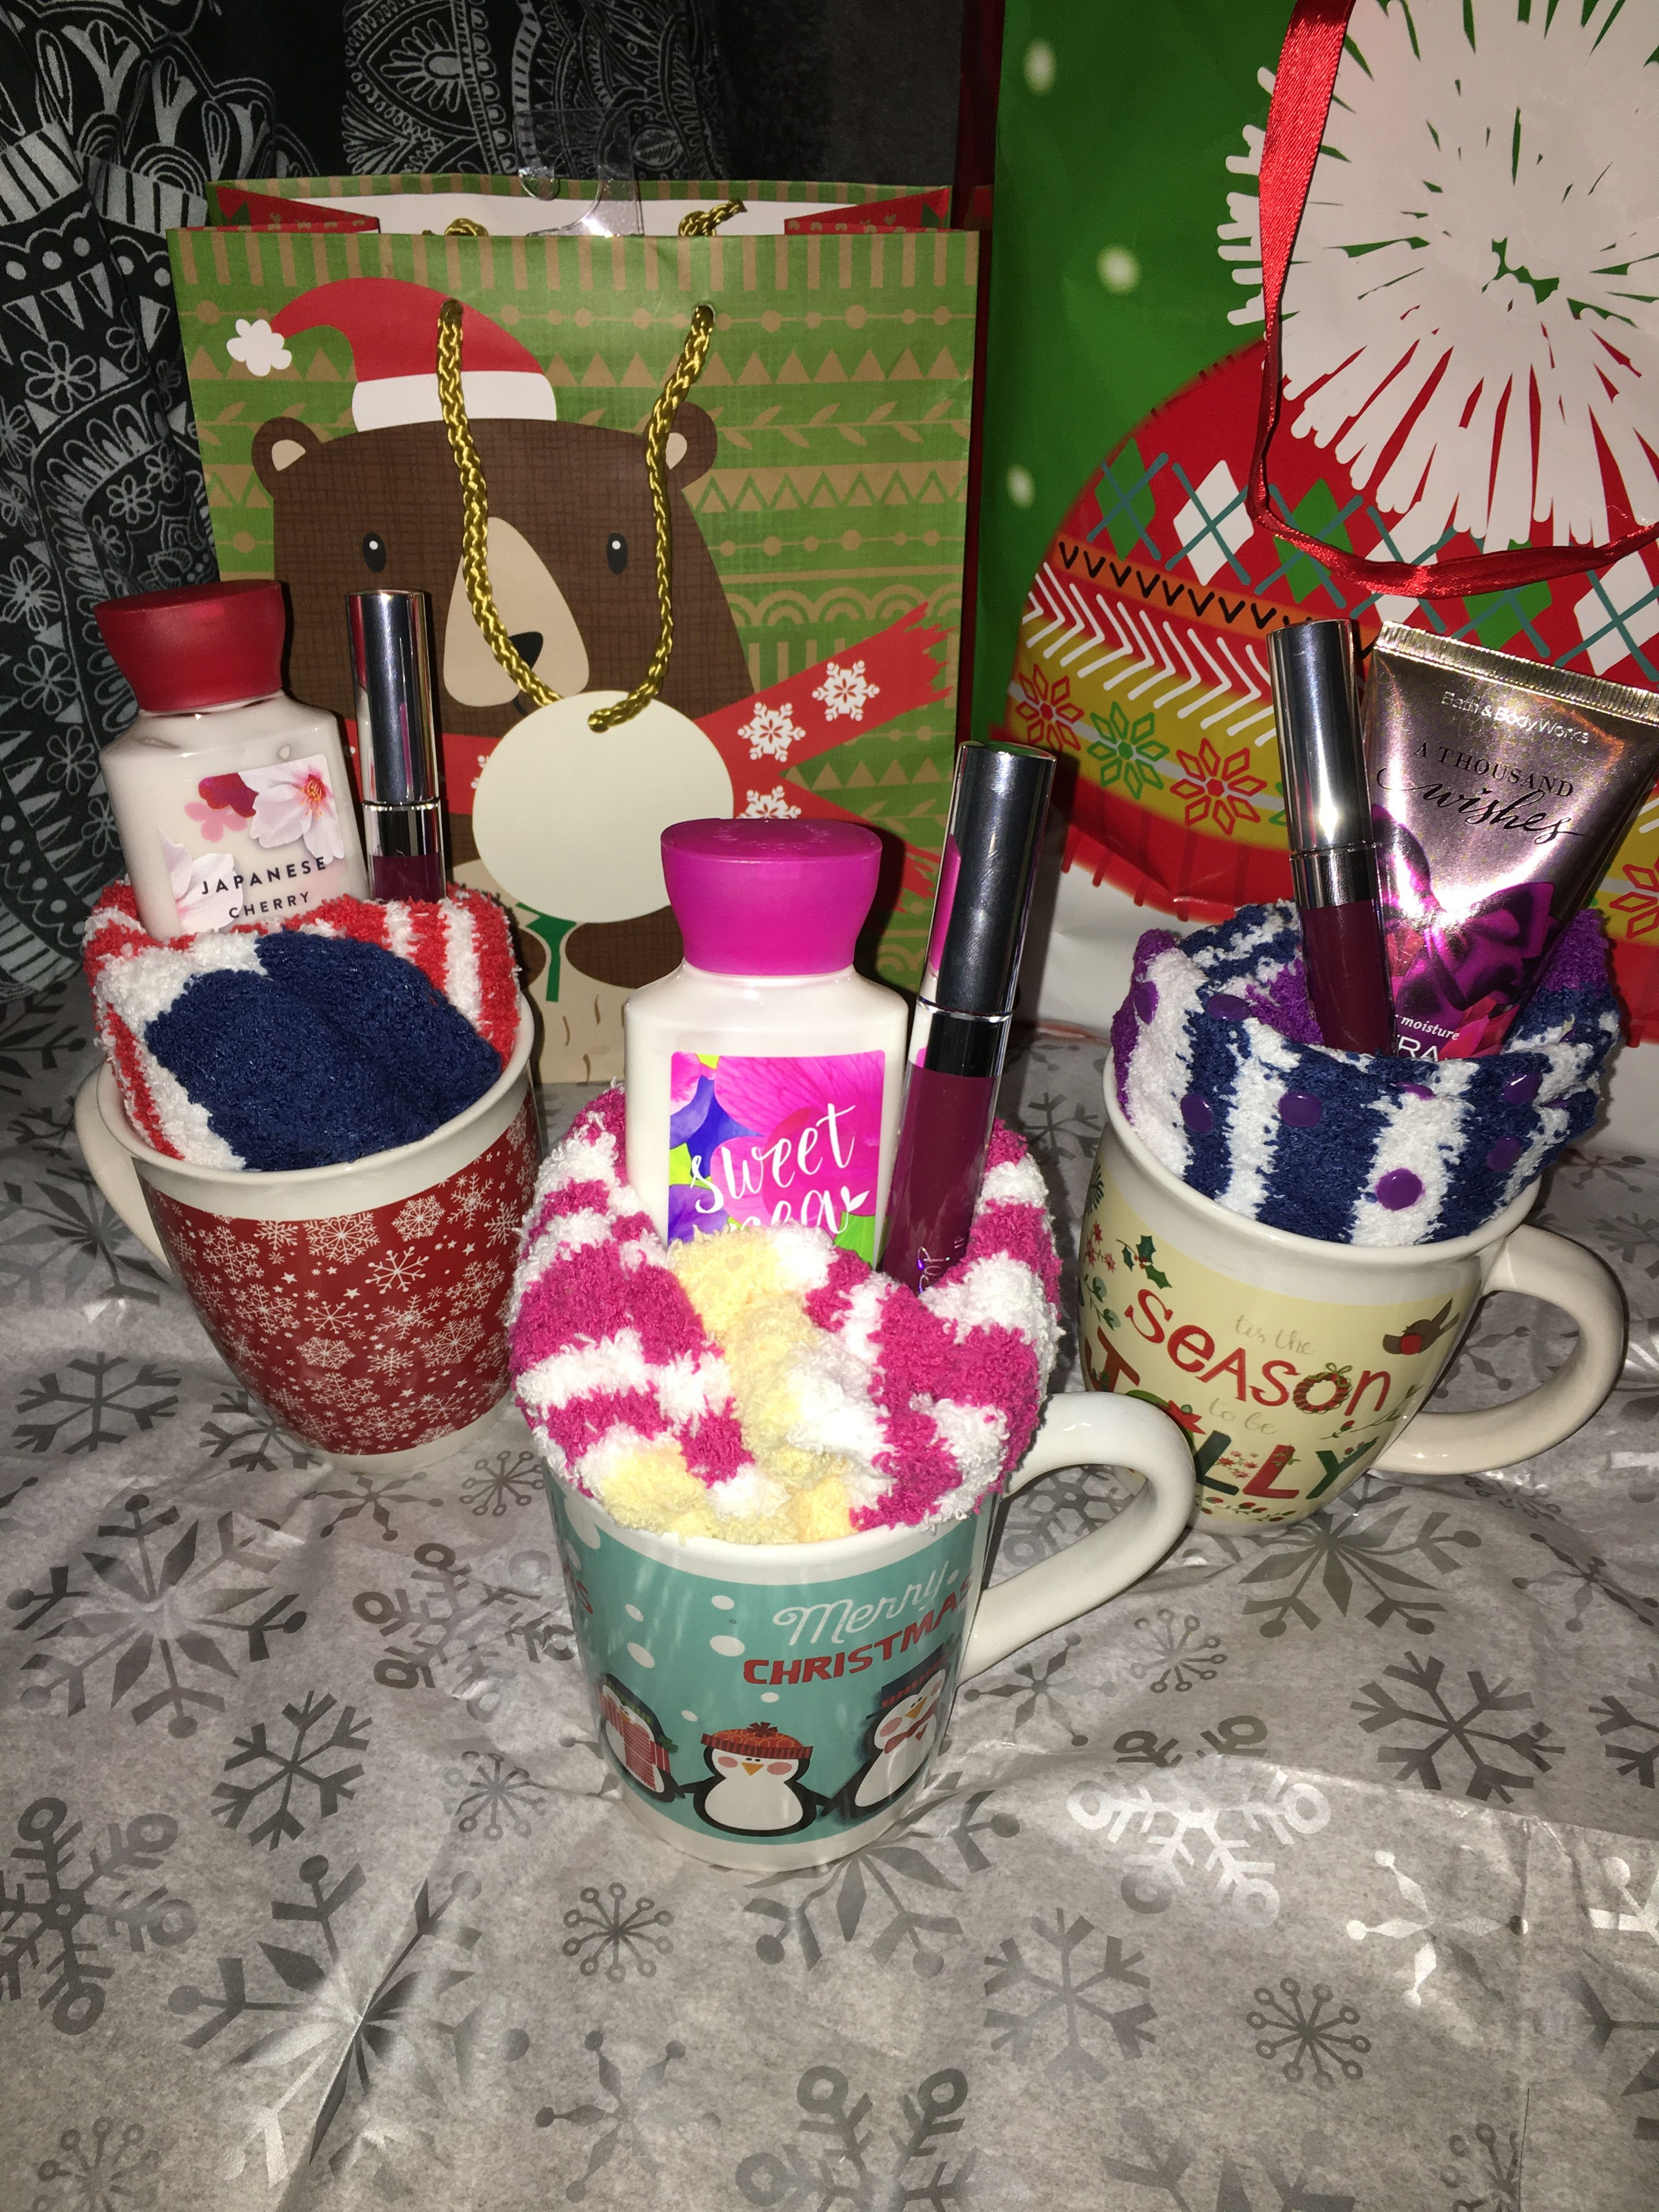 Christmas Gift For A Friend Cheap Gifts For Roommates Friends Under 10 I Love Christmas And